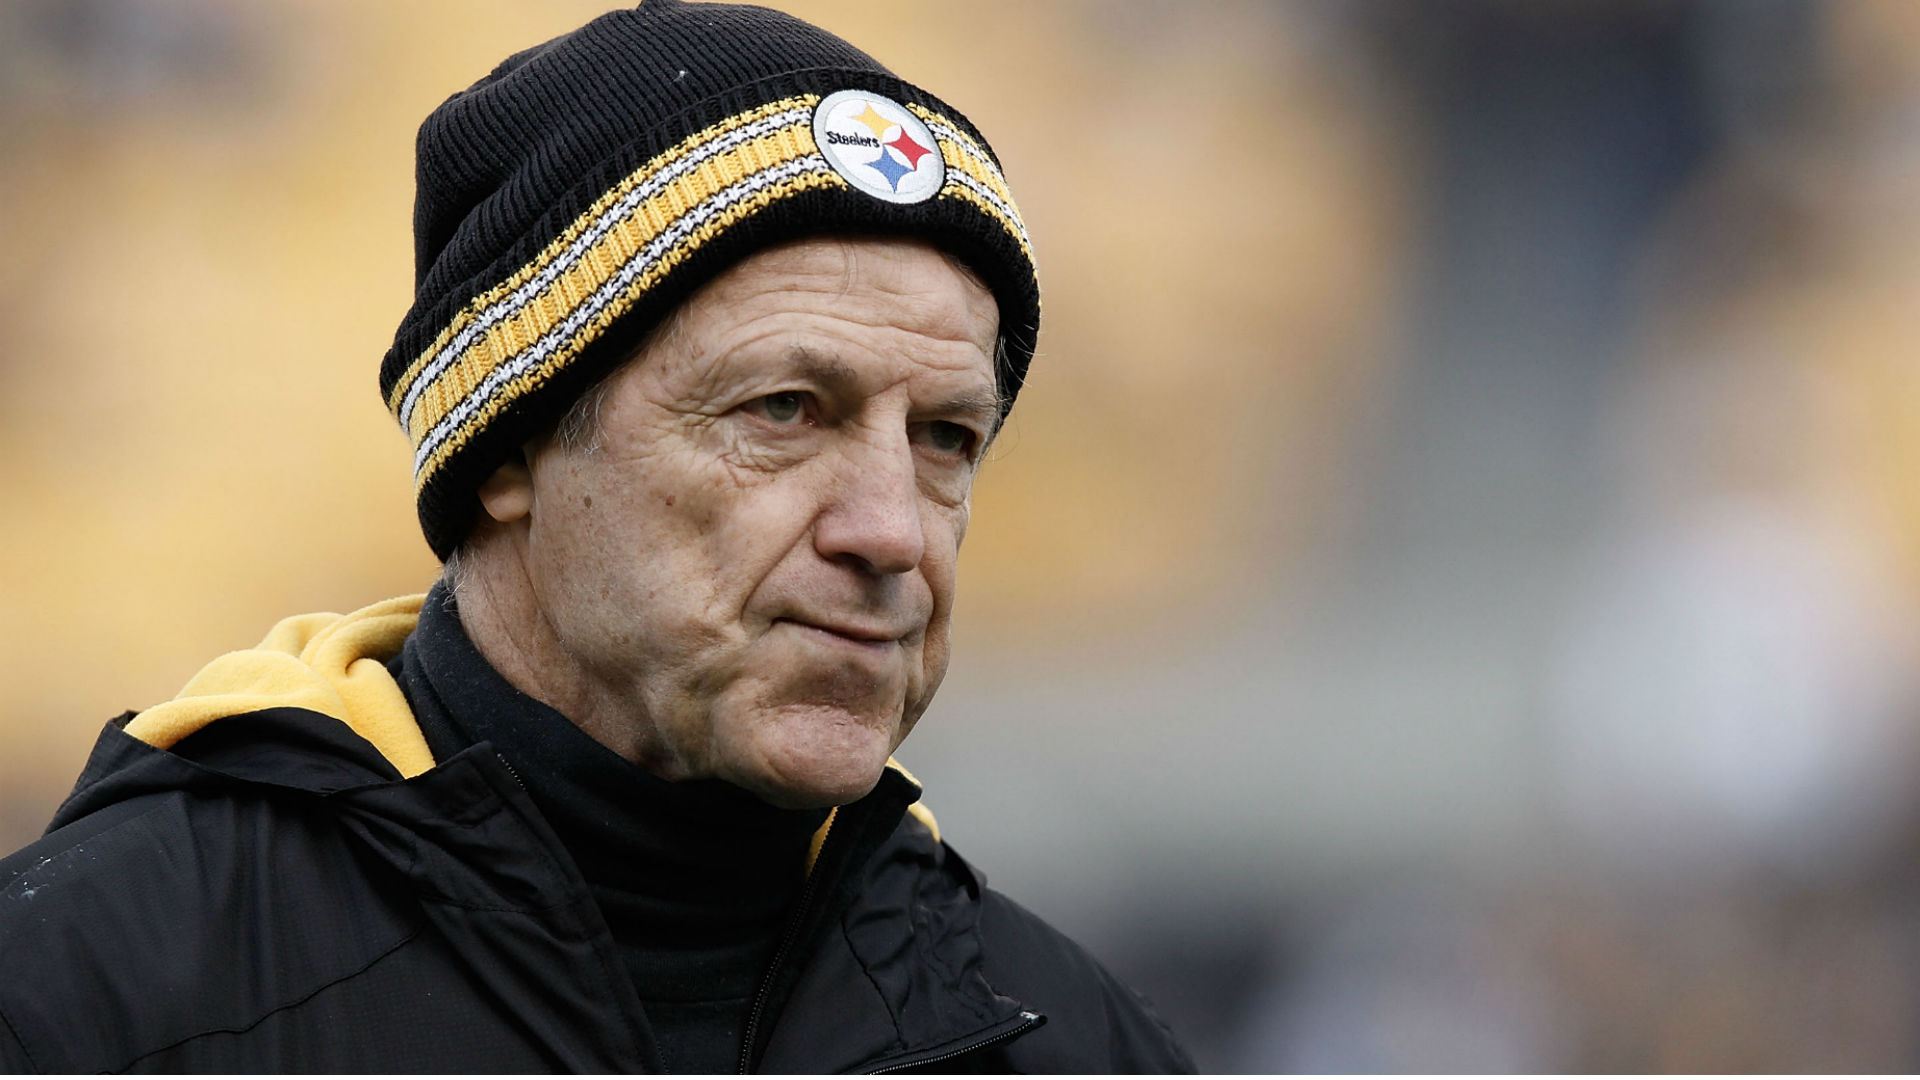 lebeau-dick-011015-usnews-getty-ftr